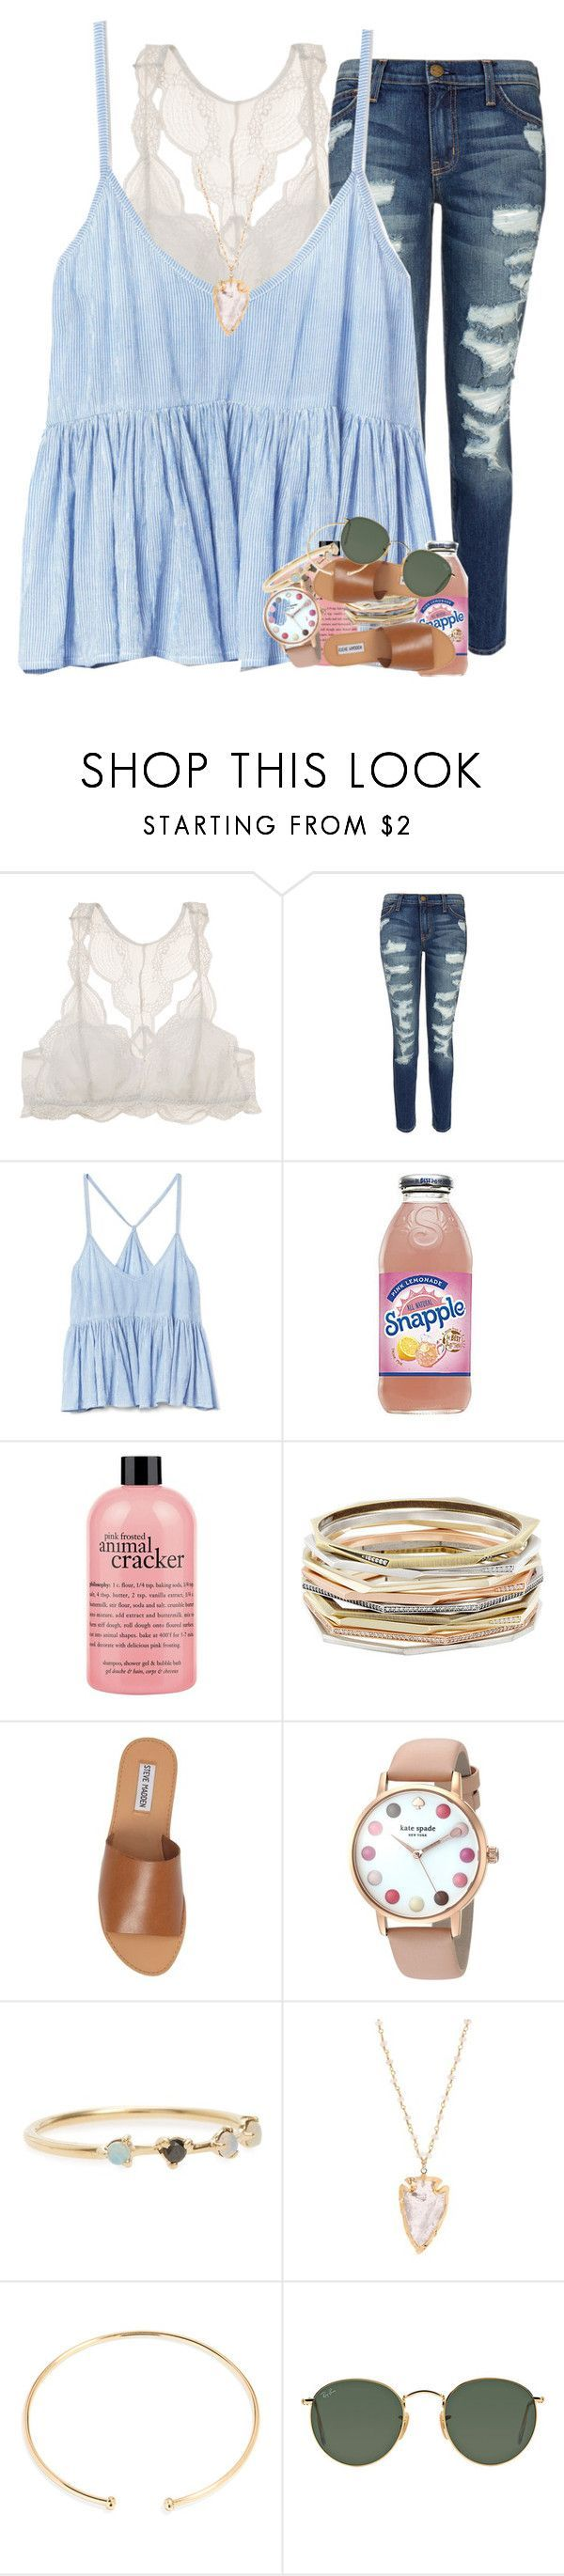 young, wild, free by ellaswiftie13 ❤ liked on Polyvore featuring Eberjey, Current/Elliott, Gap, philosophy, Kendra Scott, Steve Madden, Kate Spade, WWAKE, BaubleBar and Ray-Ban